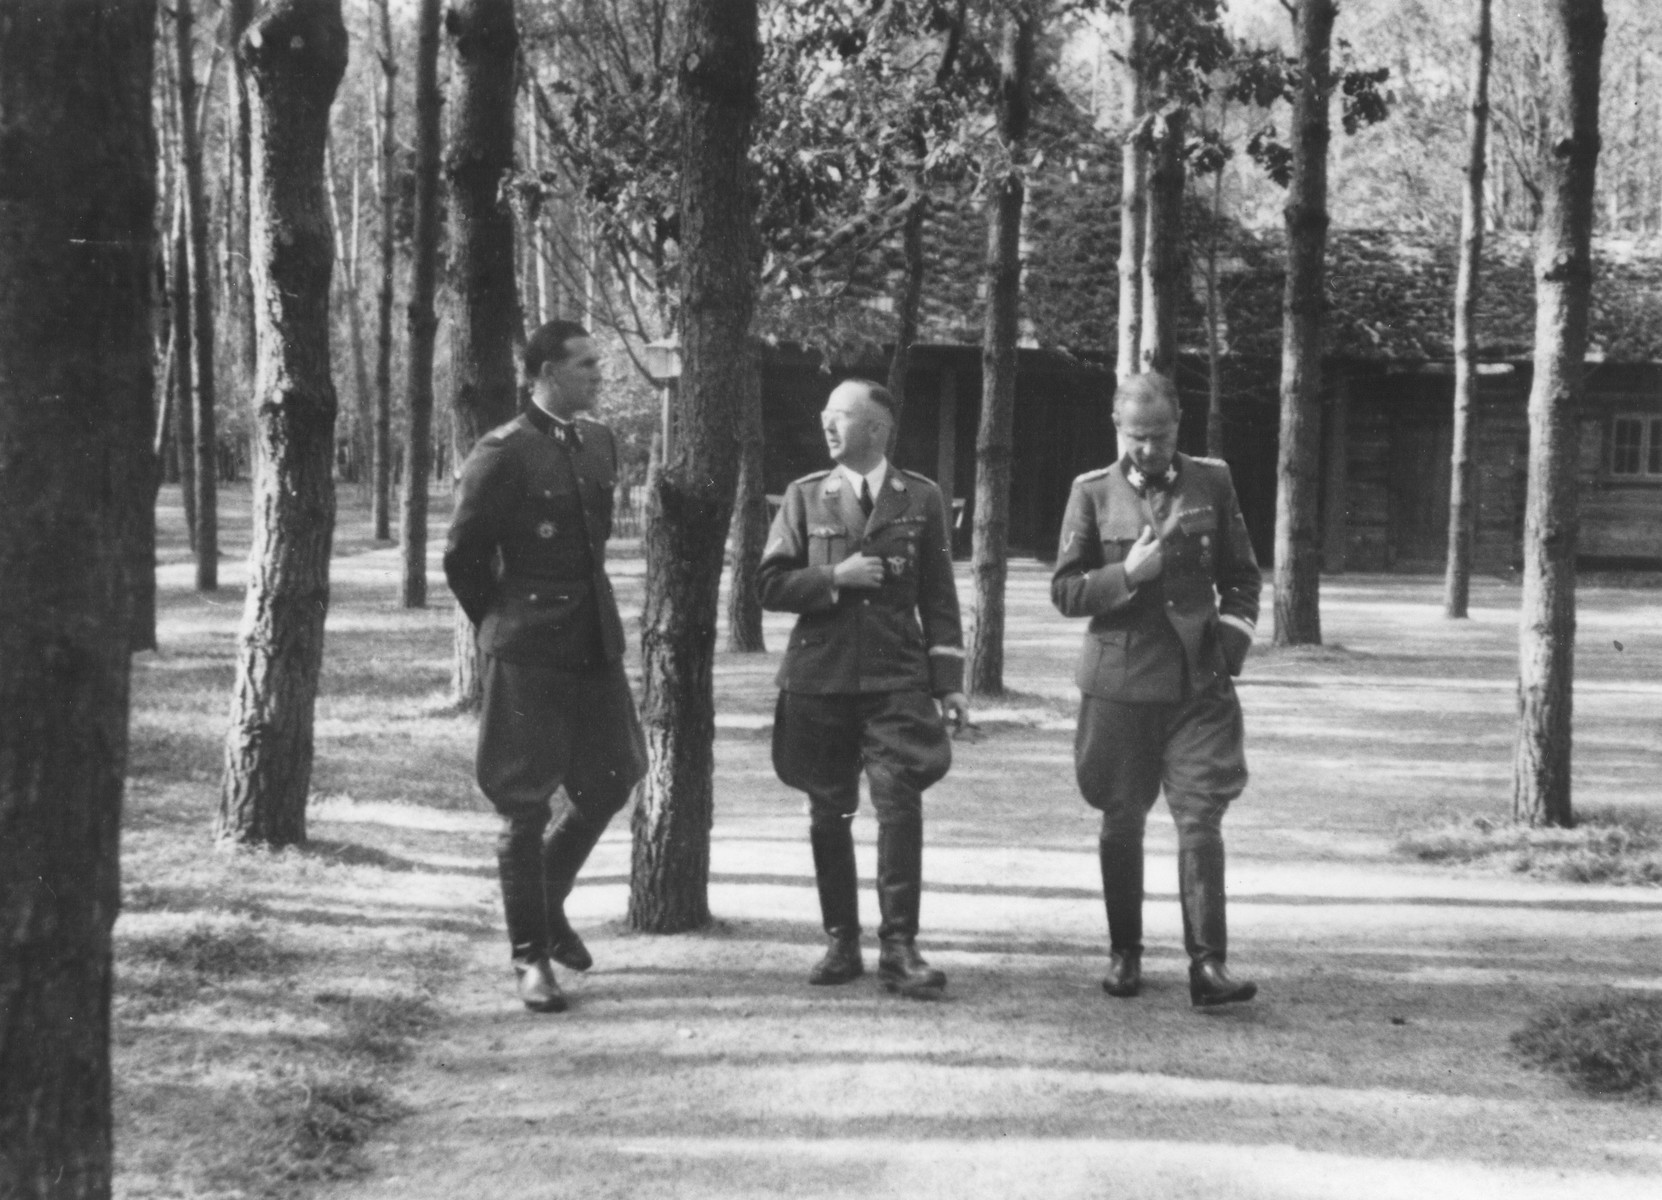 Reichsfuehrer-SS Heinrich Himmler converses outside in front of a cabin with two other Nazi leaders.  Pictured from left to right are: Richard Schulze-Kossens (Hitler's SS Adjutant), Himmler and Karl Wolff.